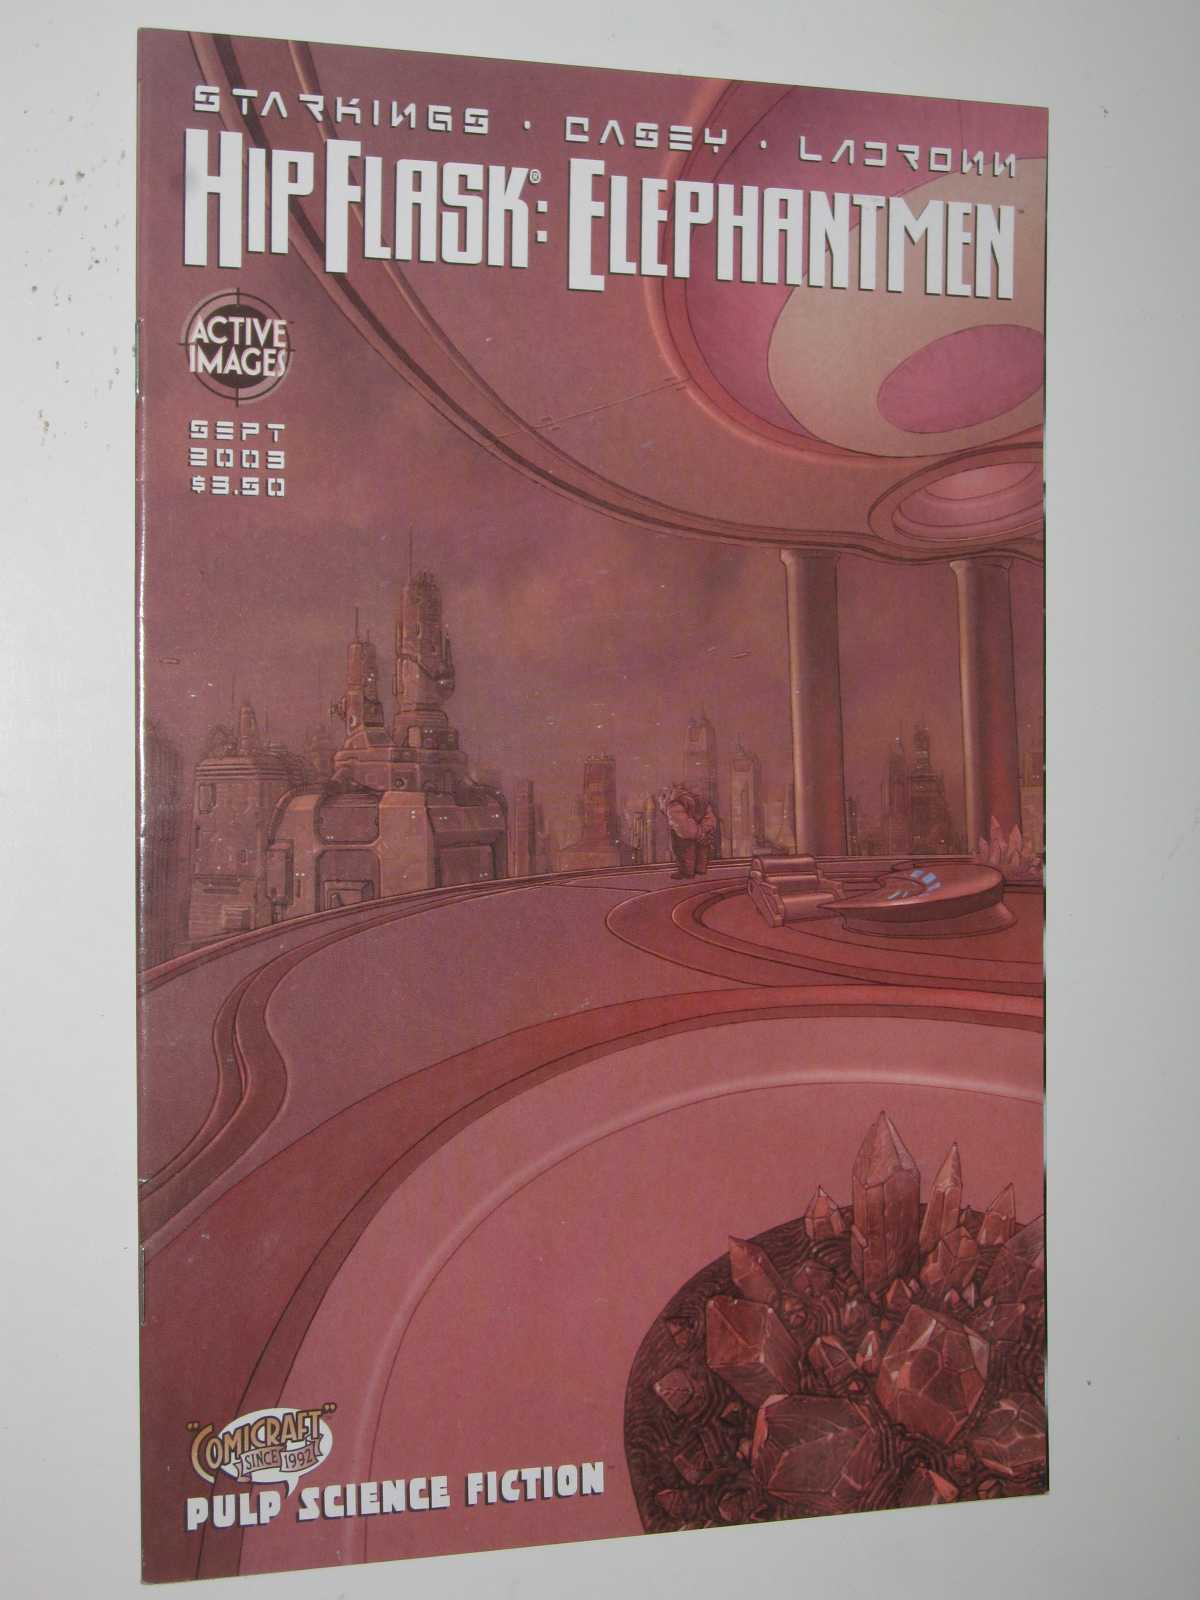 Image for Hip Flask: Elephantmen September 2003 - Cover 2 of 4